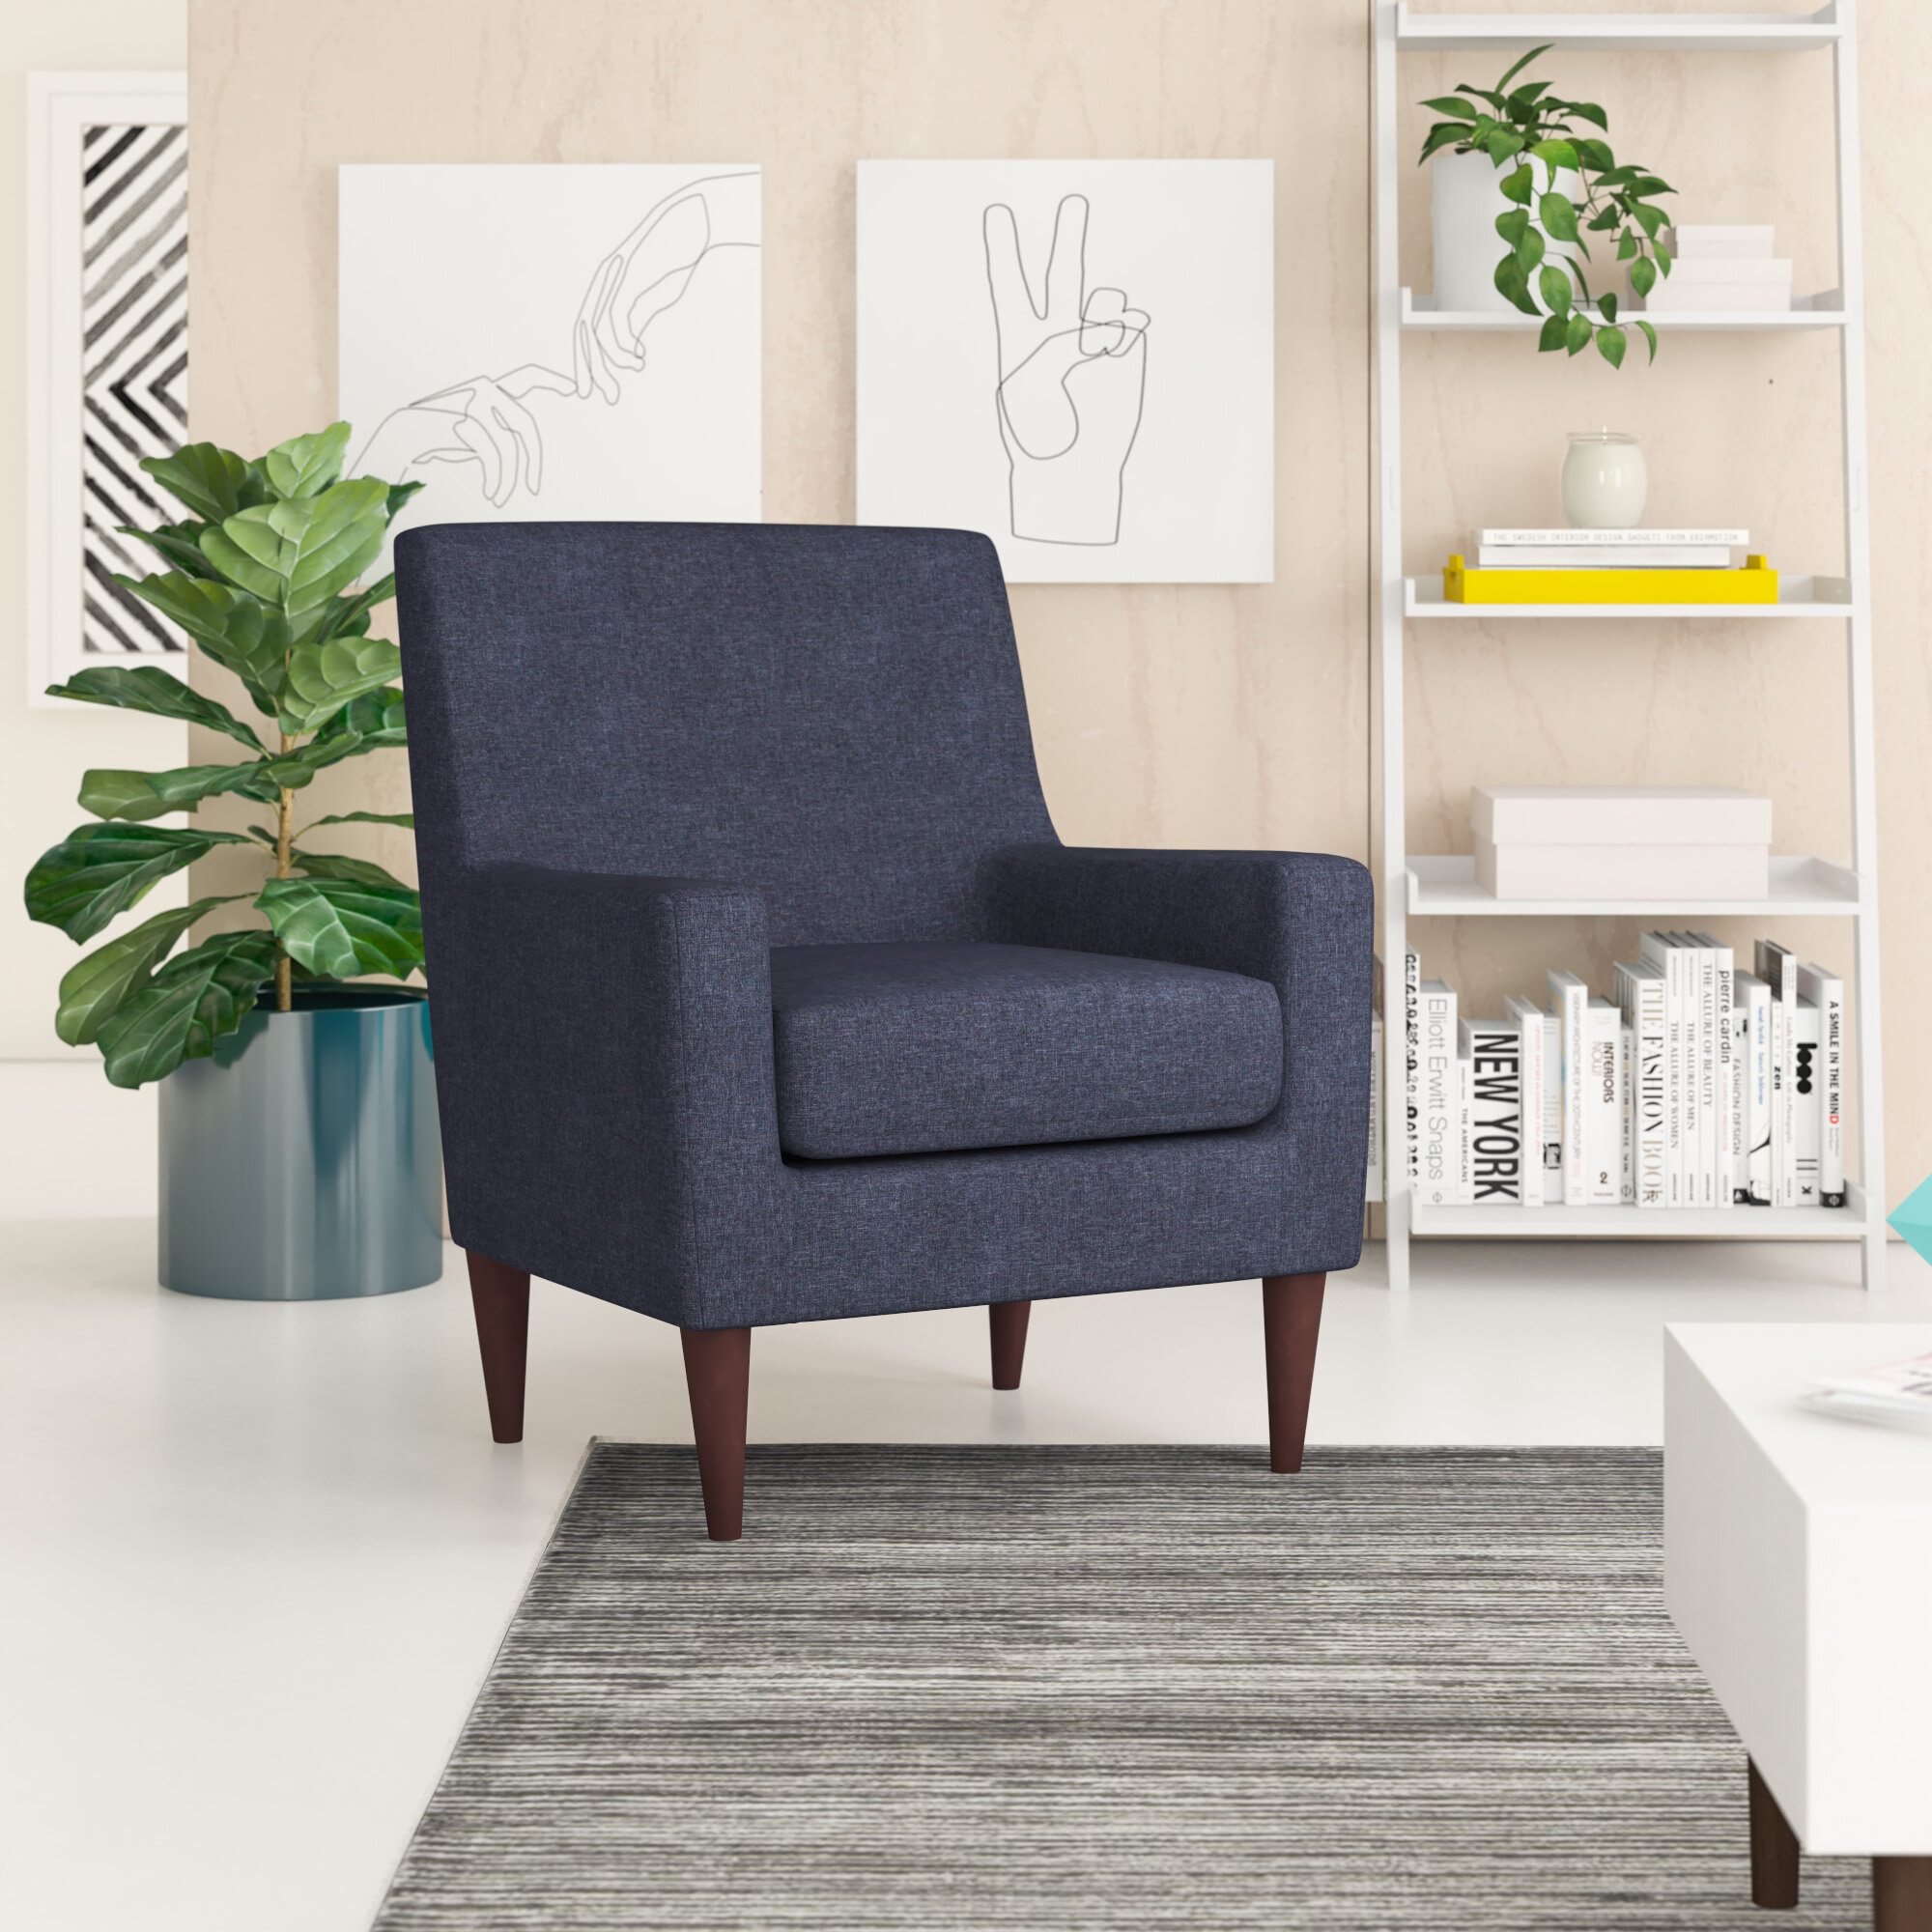 Armchairs | Wayfair In Dallin Arm Chairs (View 12 of 15)